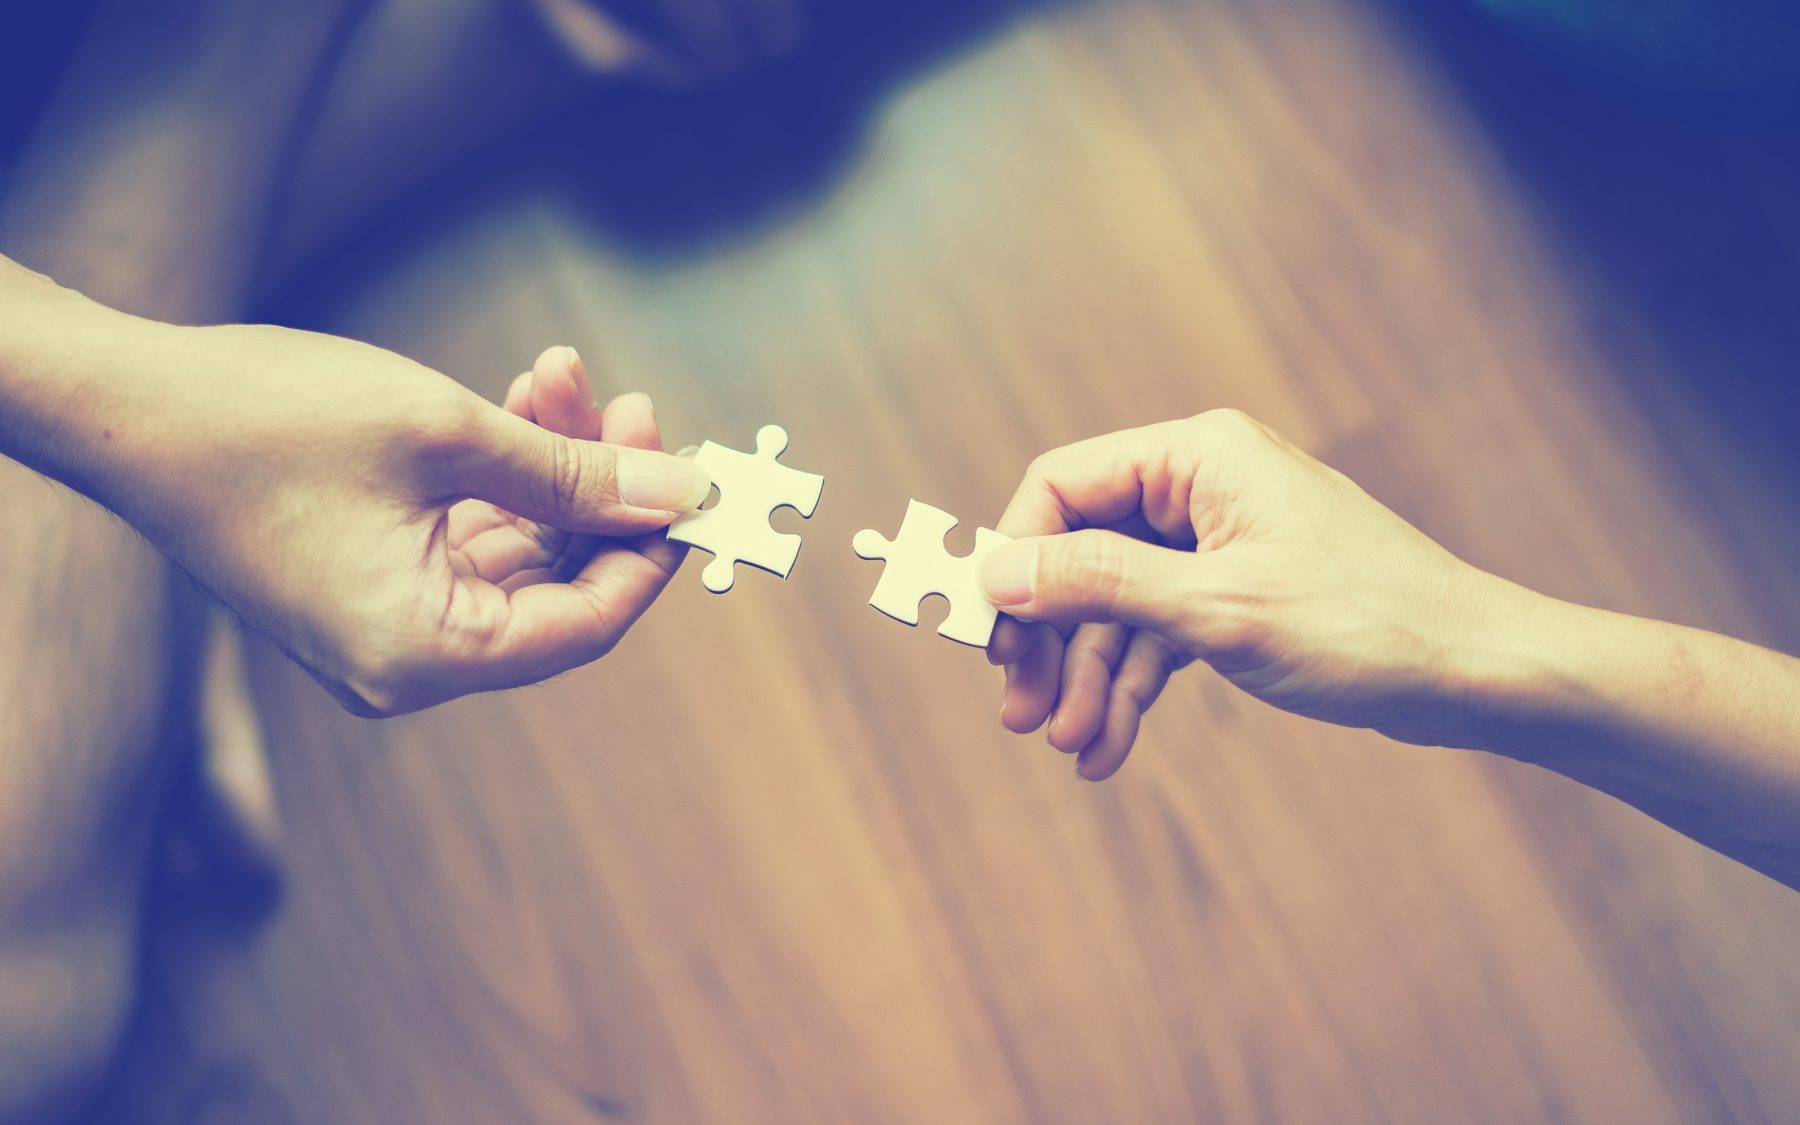 2 hands each with a puzzle piece reaching out to each other